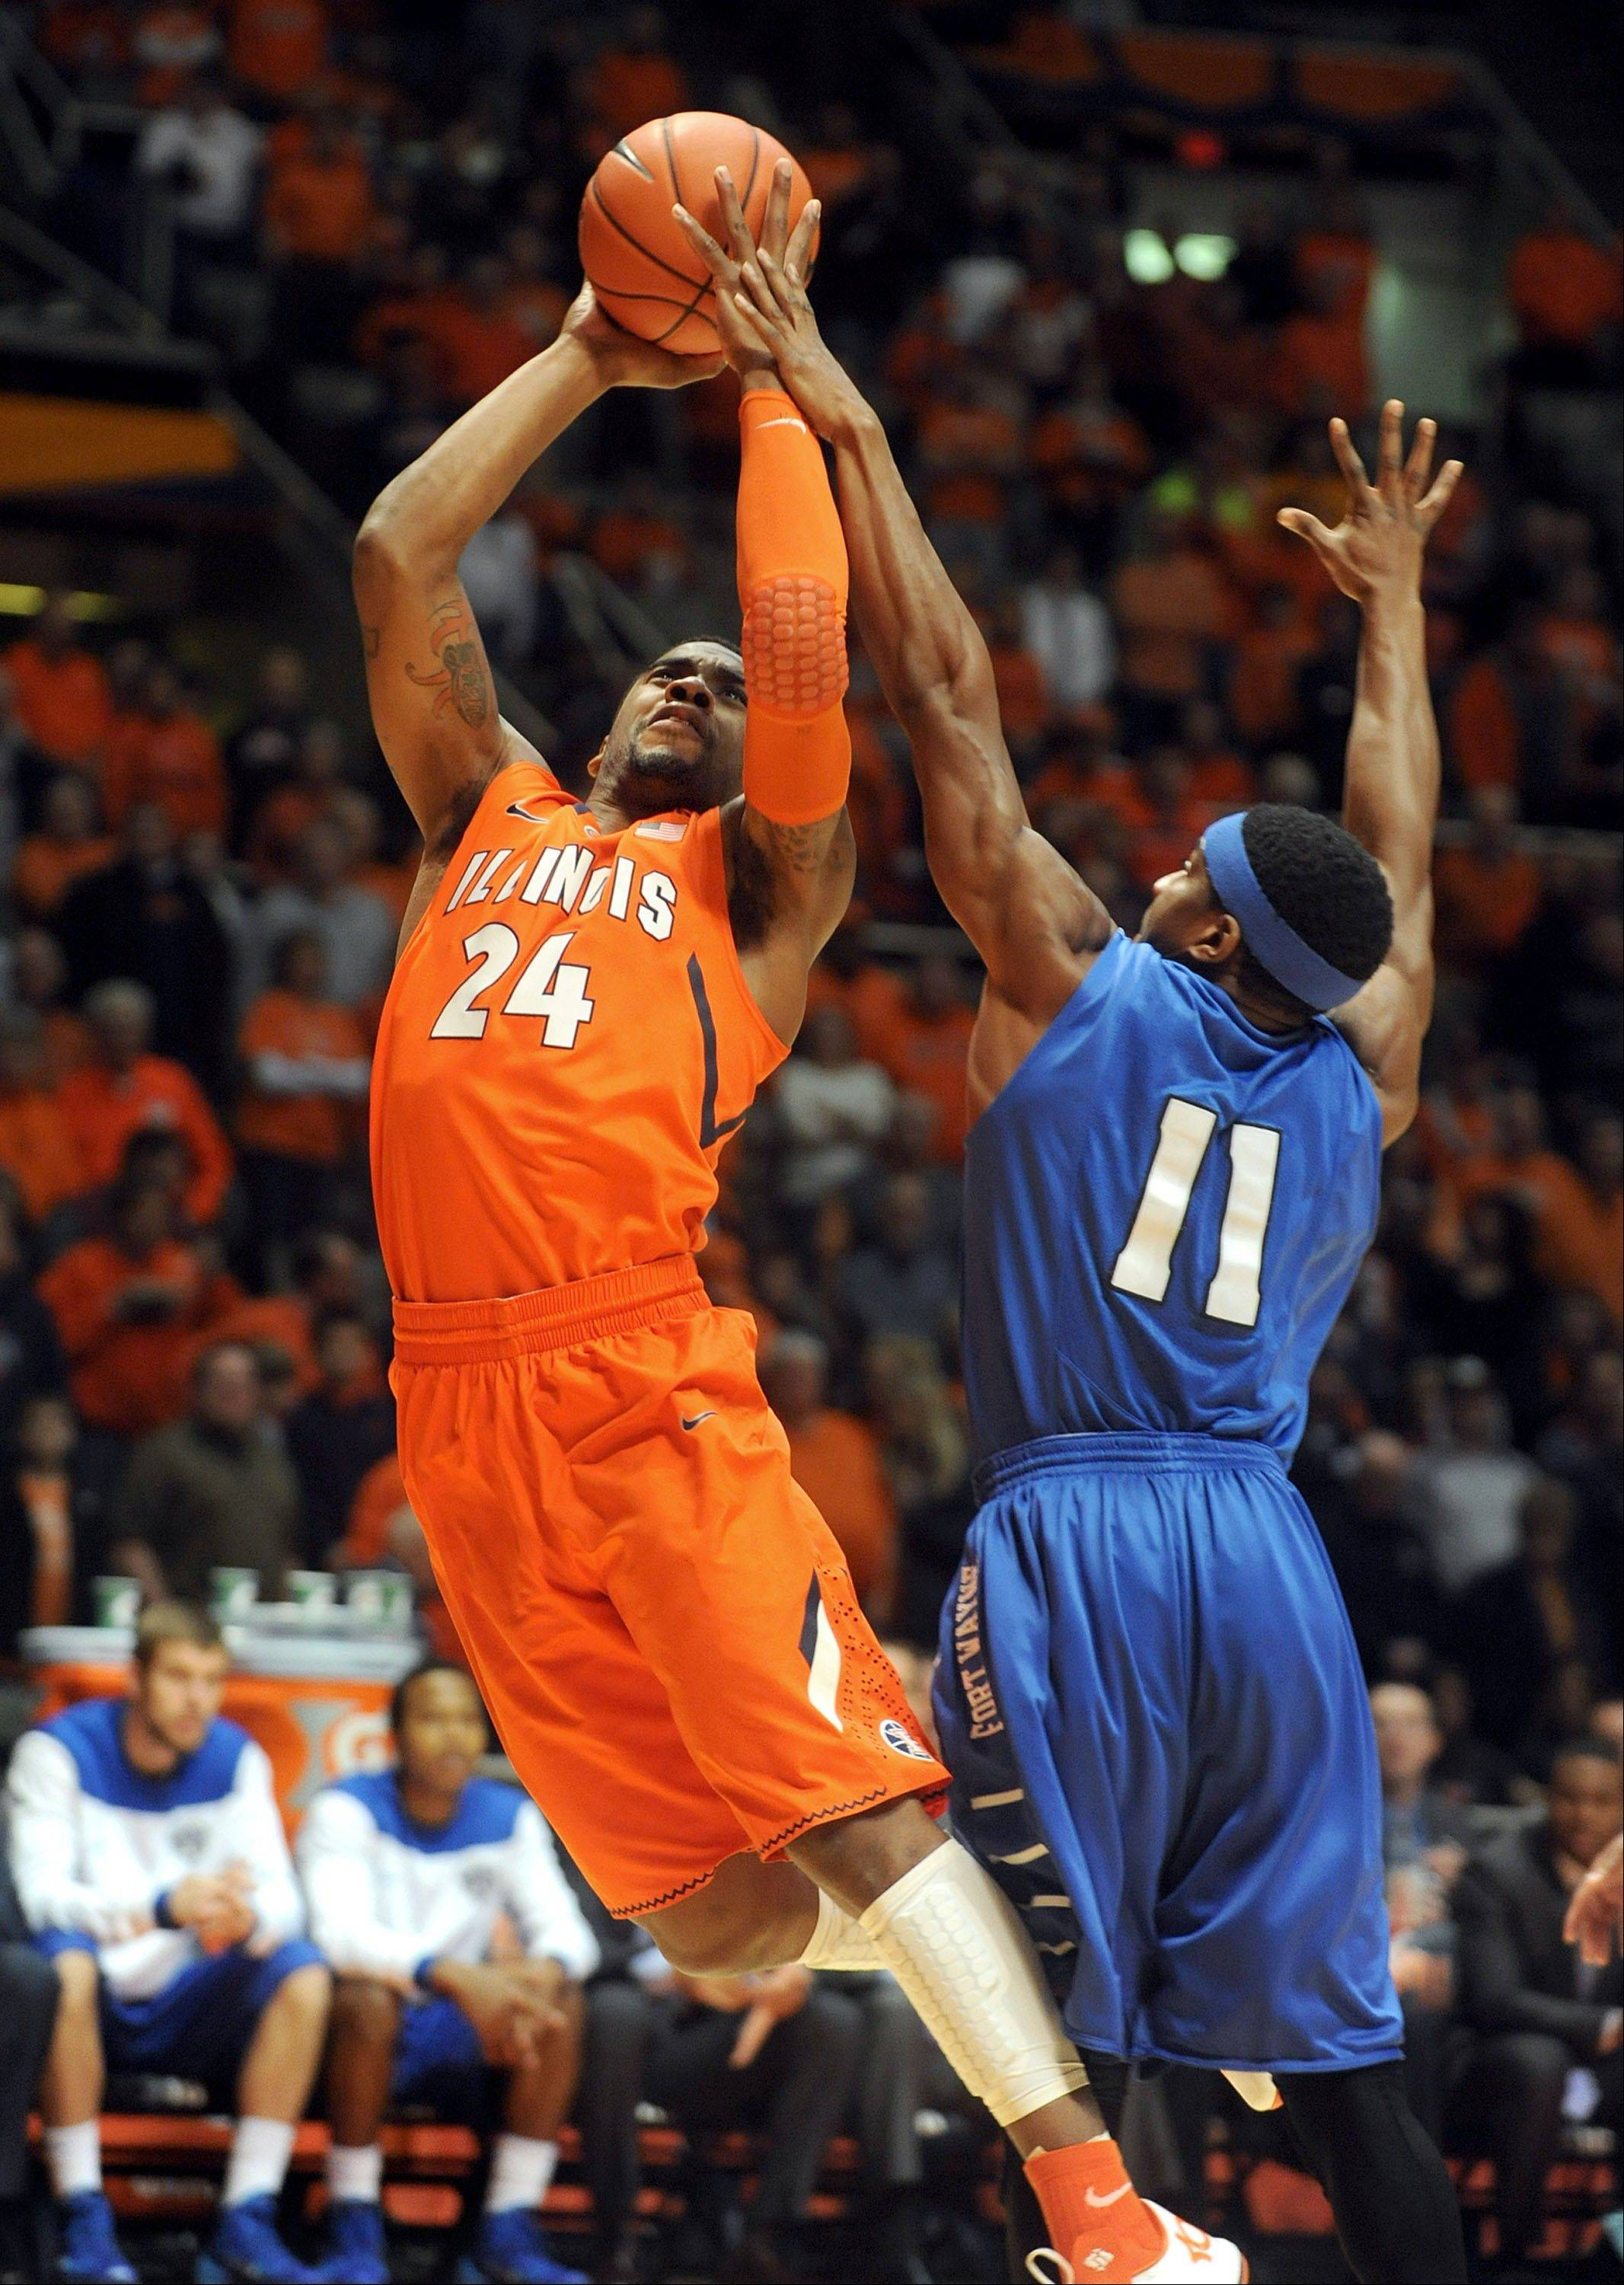 Illinois guard Rayvonte Rice (24) goes up for a basket against IPFW�s Isaiah McCray during the first half at State Farm Center in Champaign.